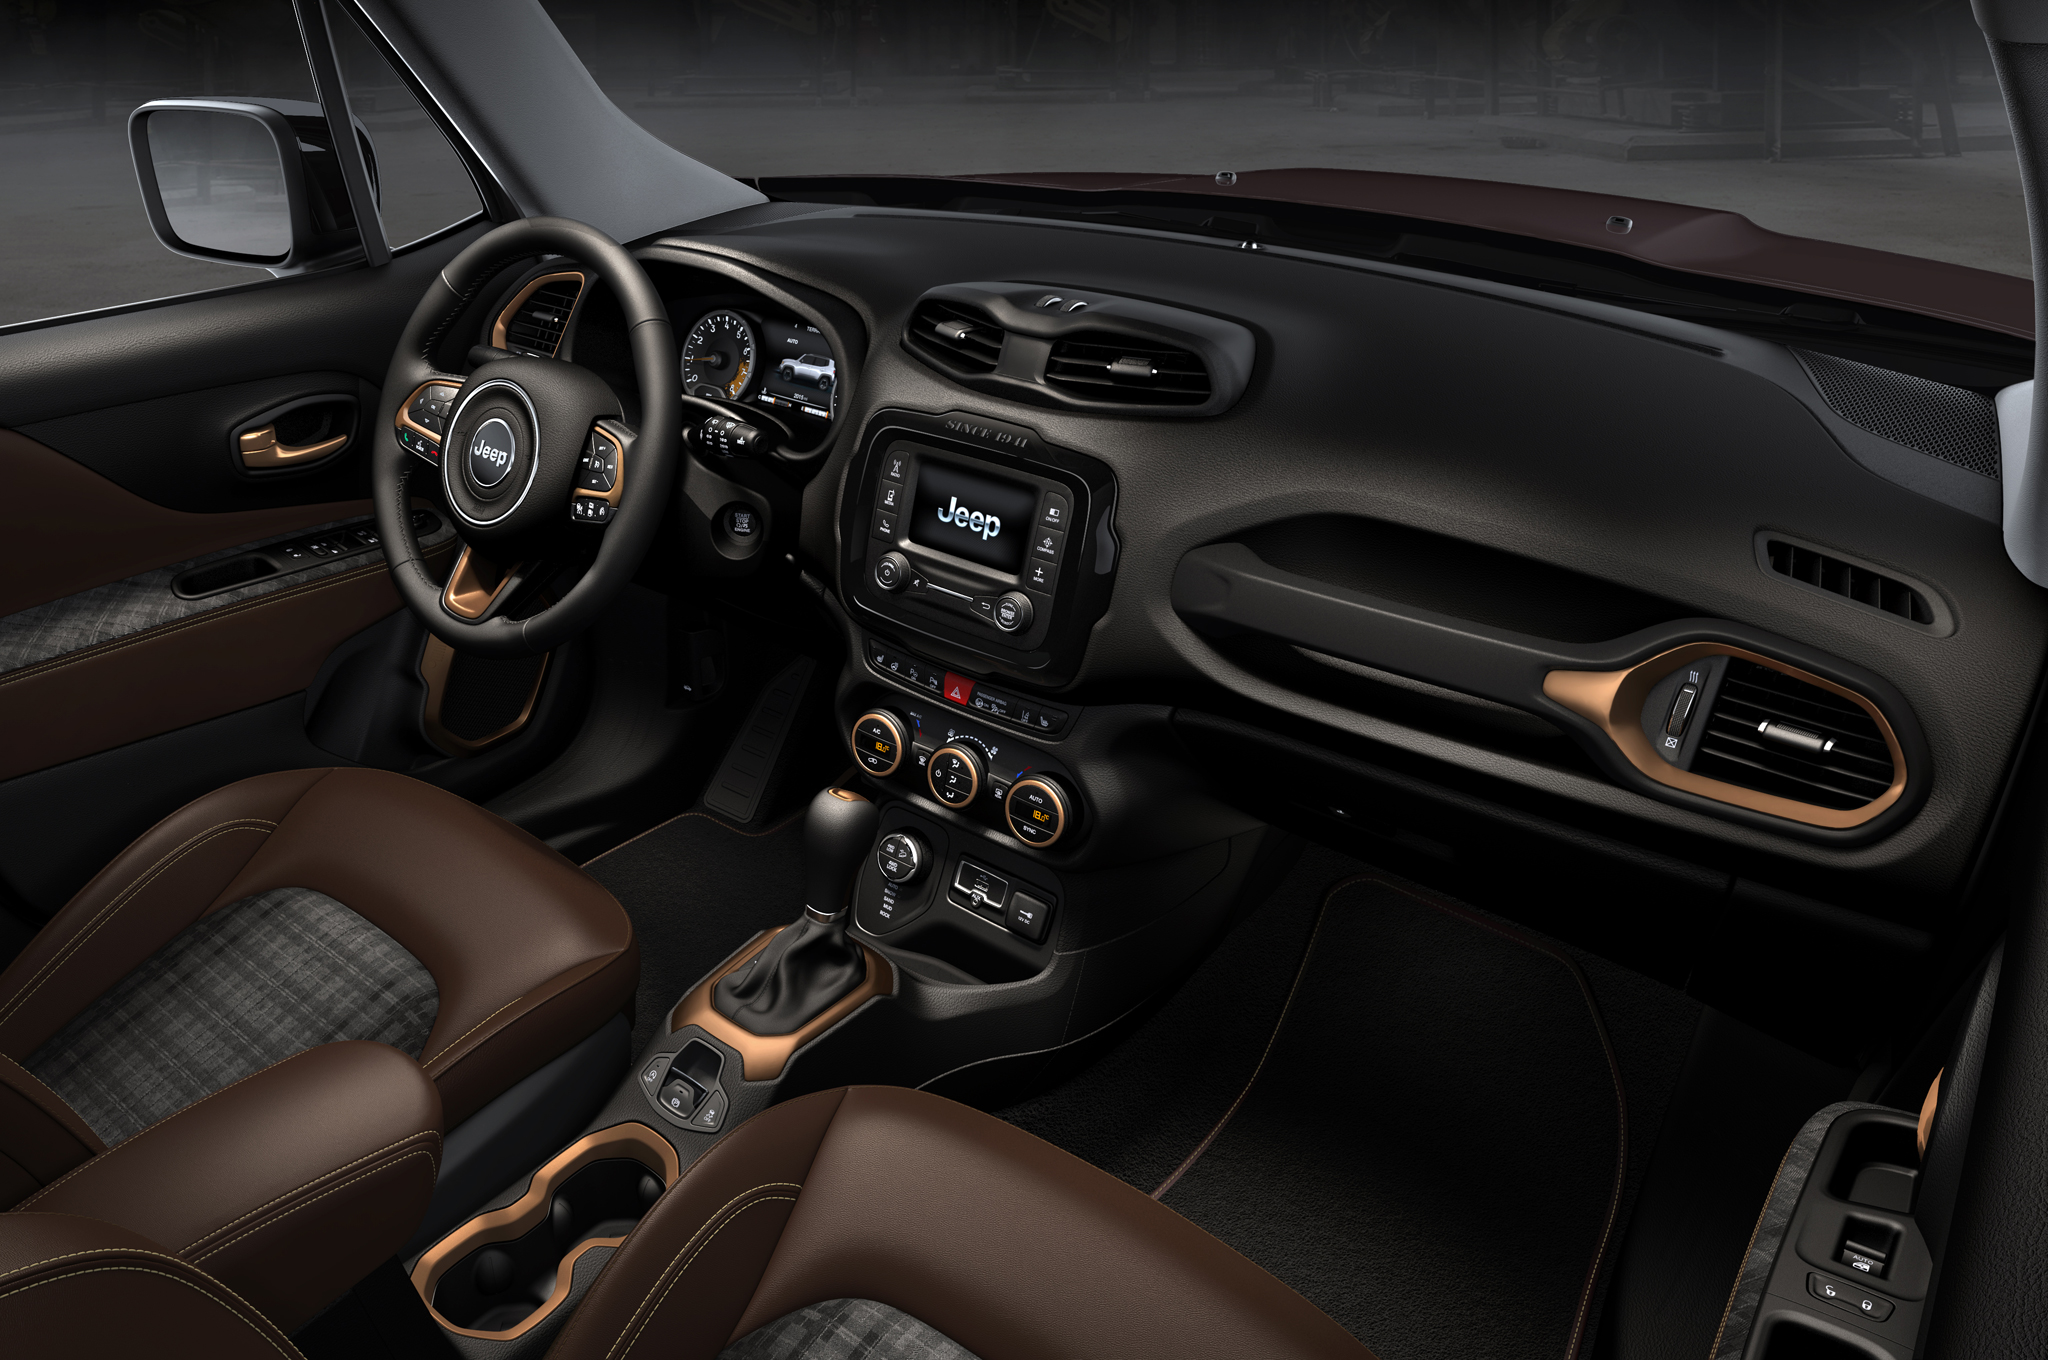 marvelous-desig-of-the-brown-seat-ideas-added-with-black-dash-as-the-jeep-renegade-2015-interior-ideas